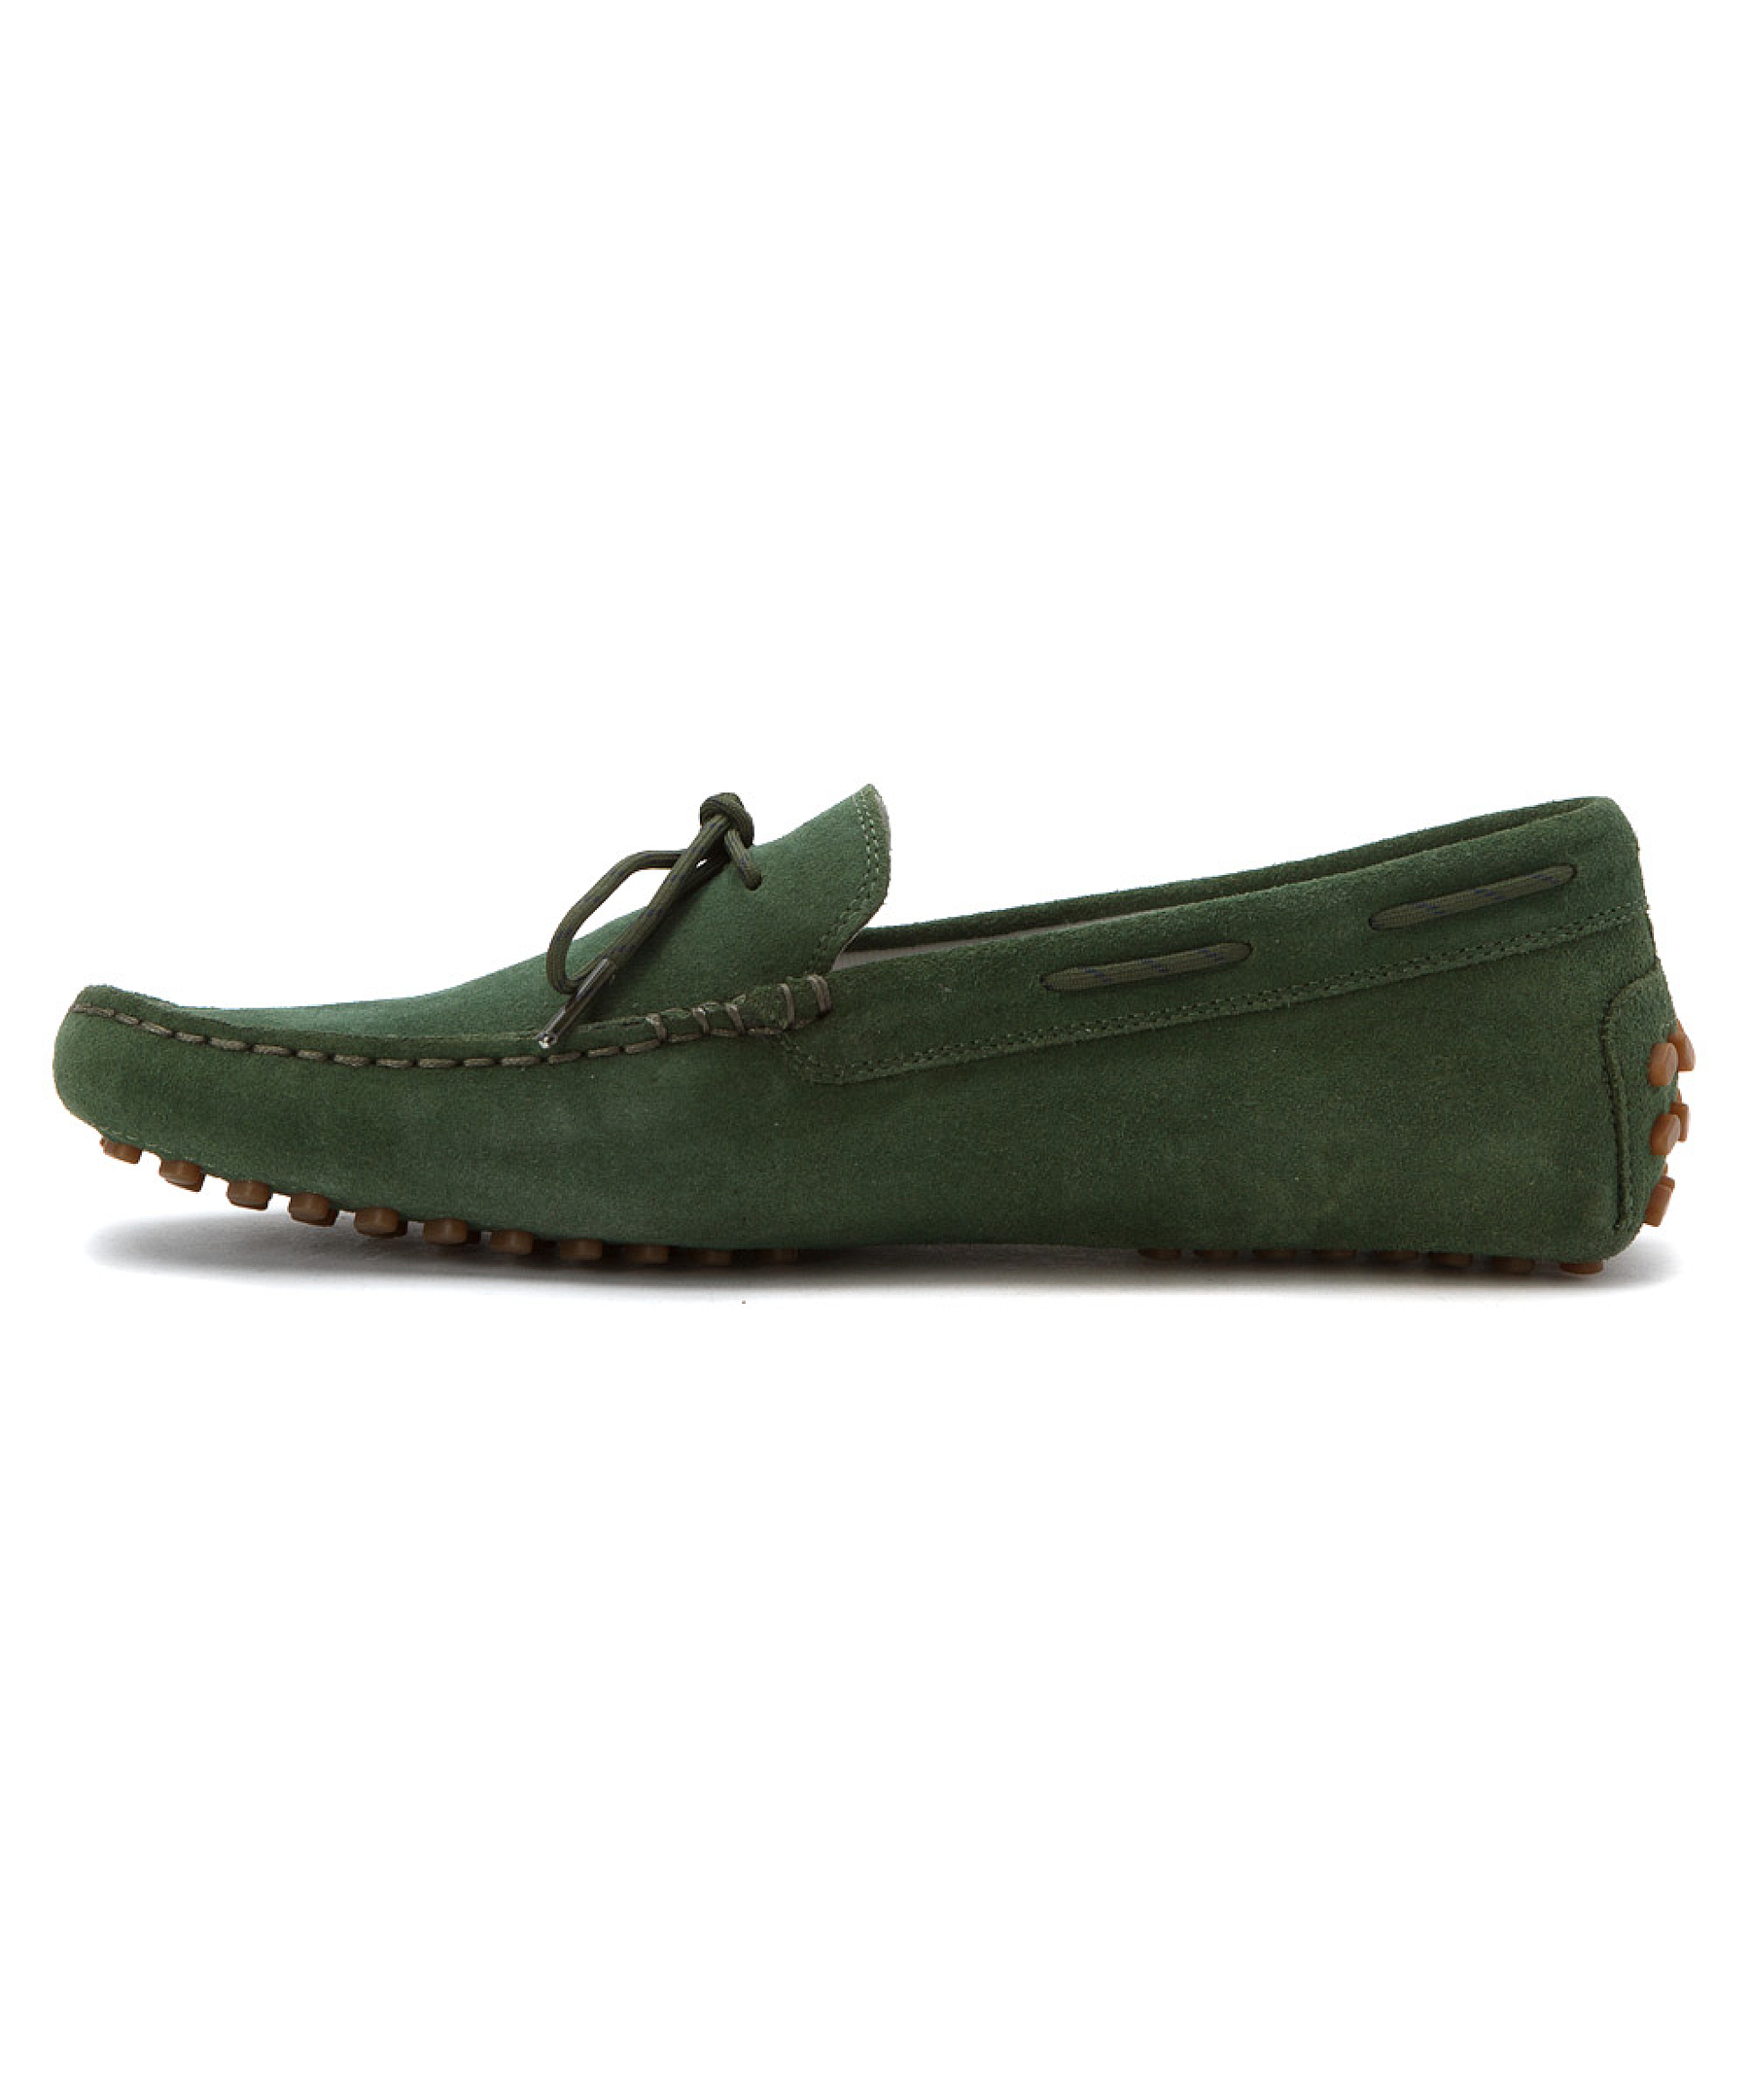 Lacoste Men S Shoes Concours Loafers